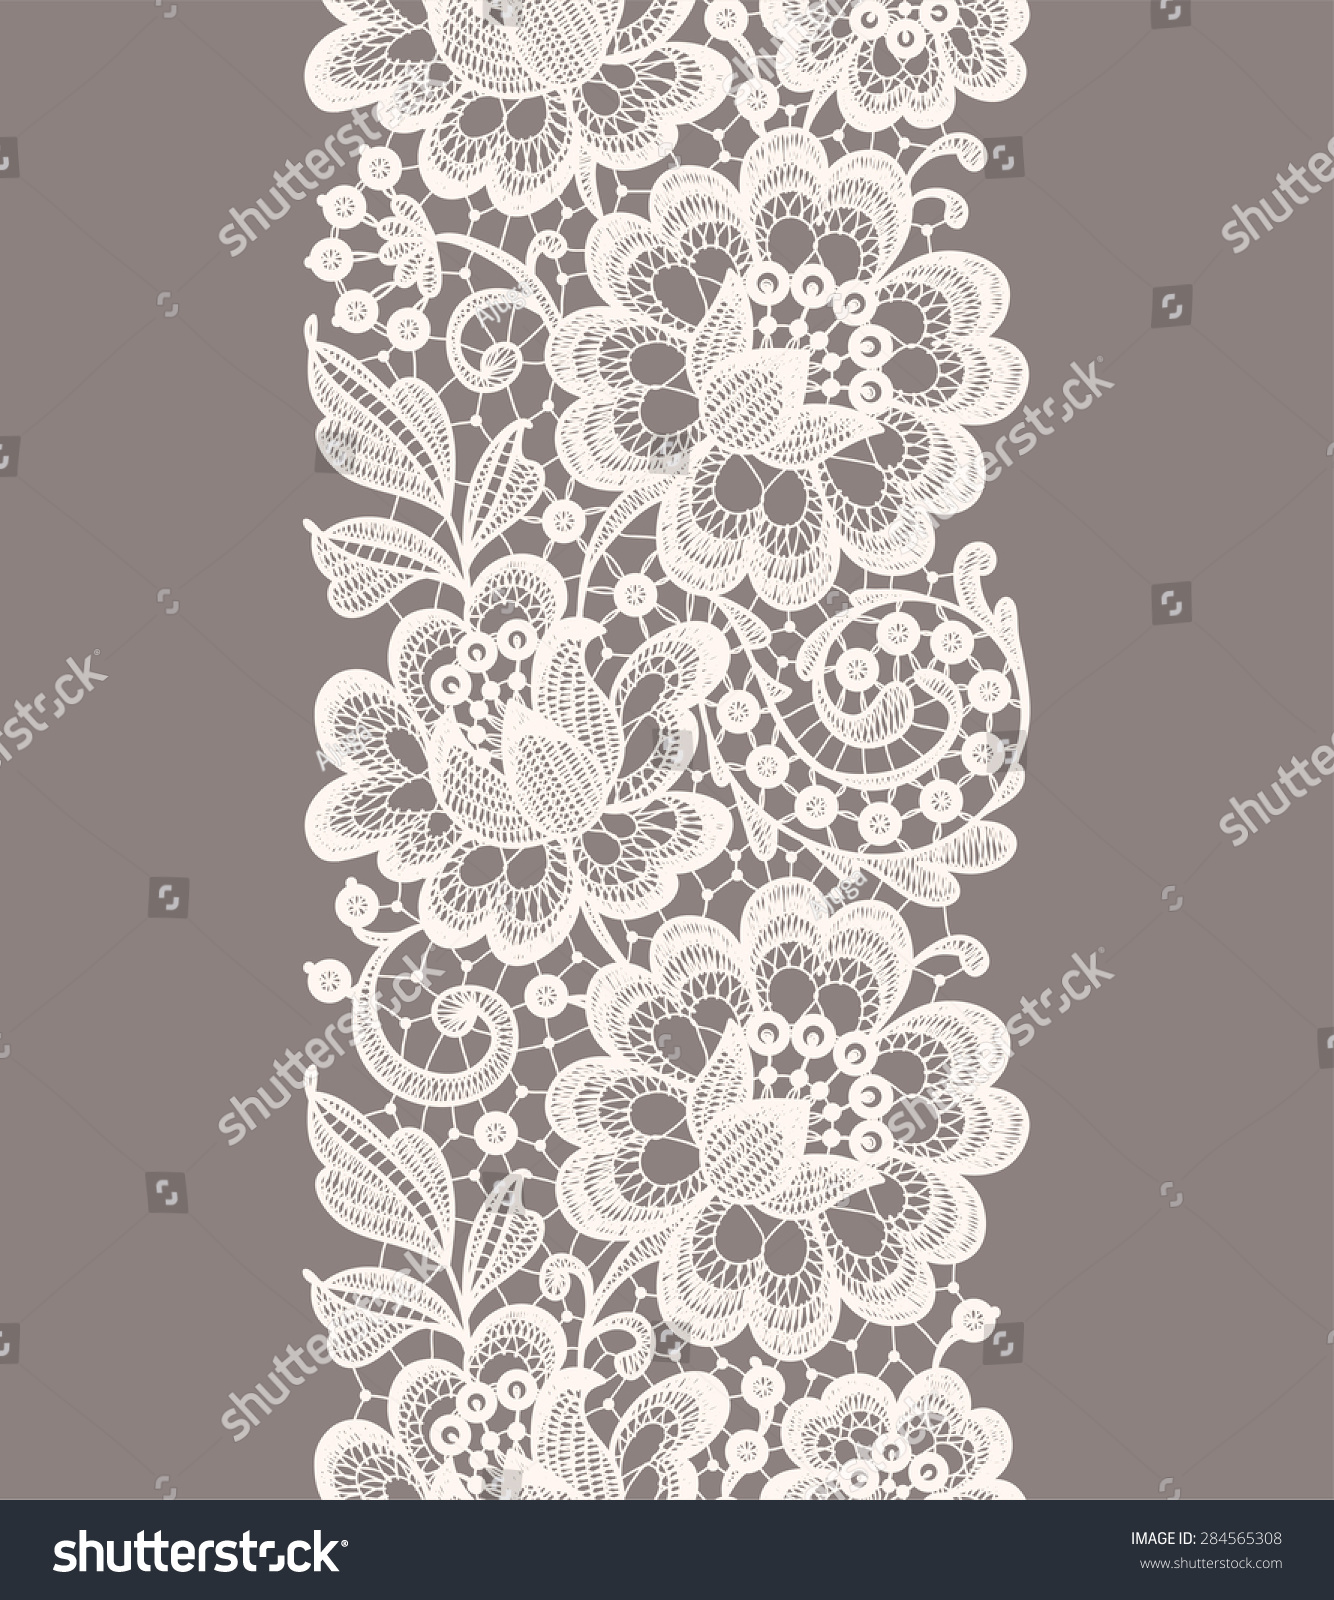 Lace Stock Photos, Royalty-Free Images & Vectors - Shutterstock